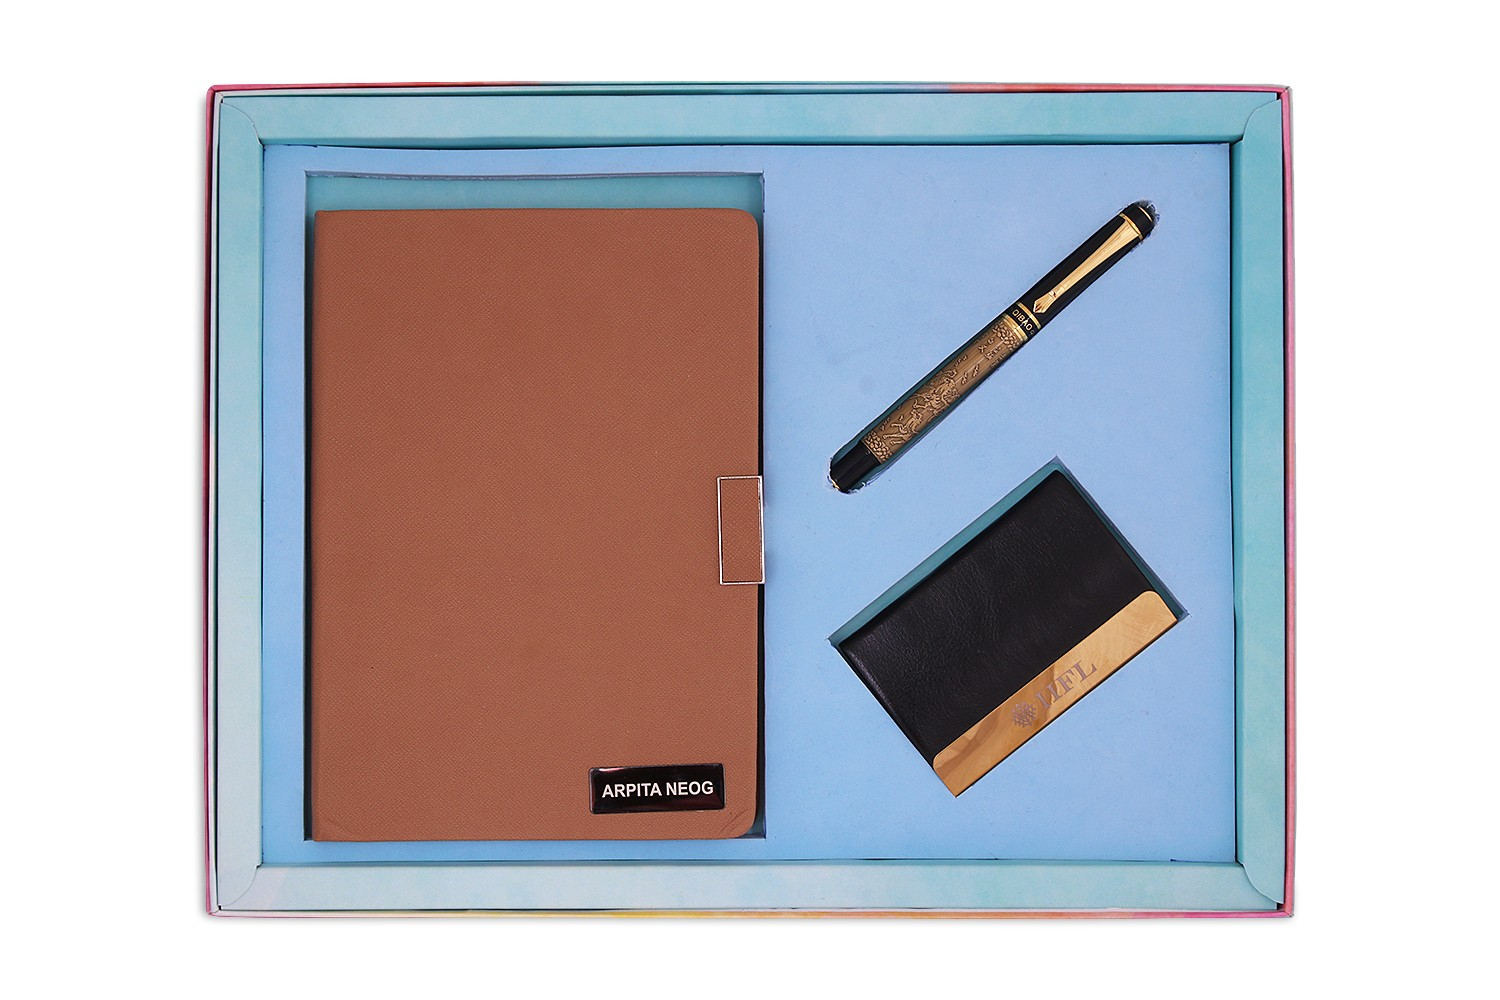 Executive Planner, Card Holder & Pen Combo 2